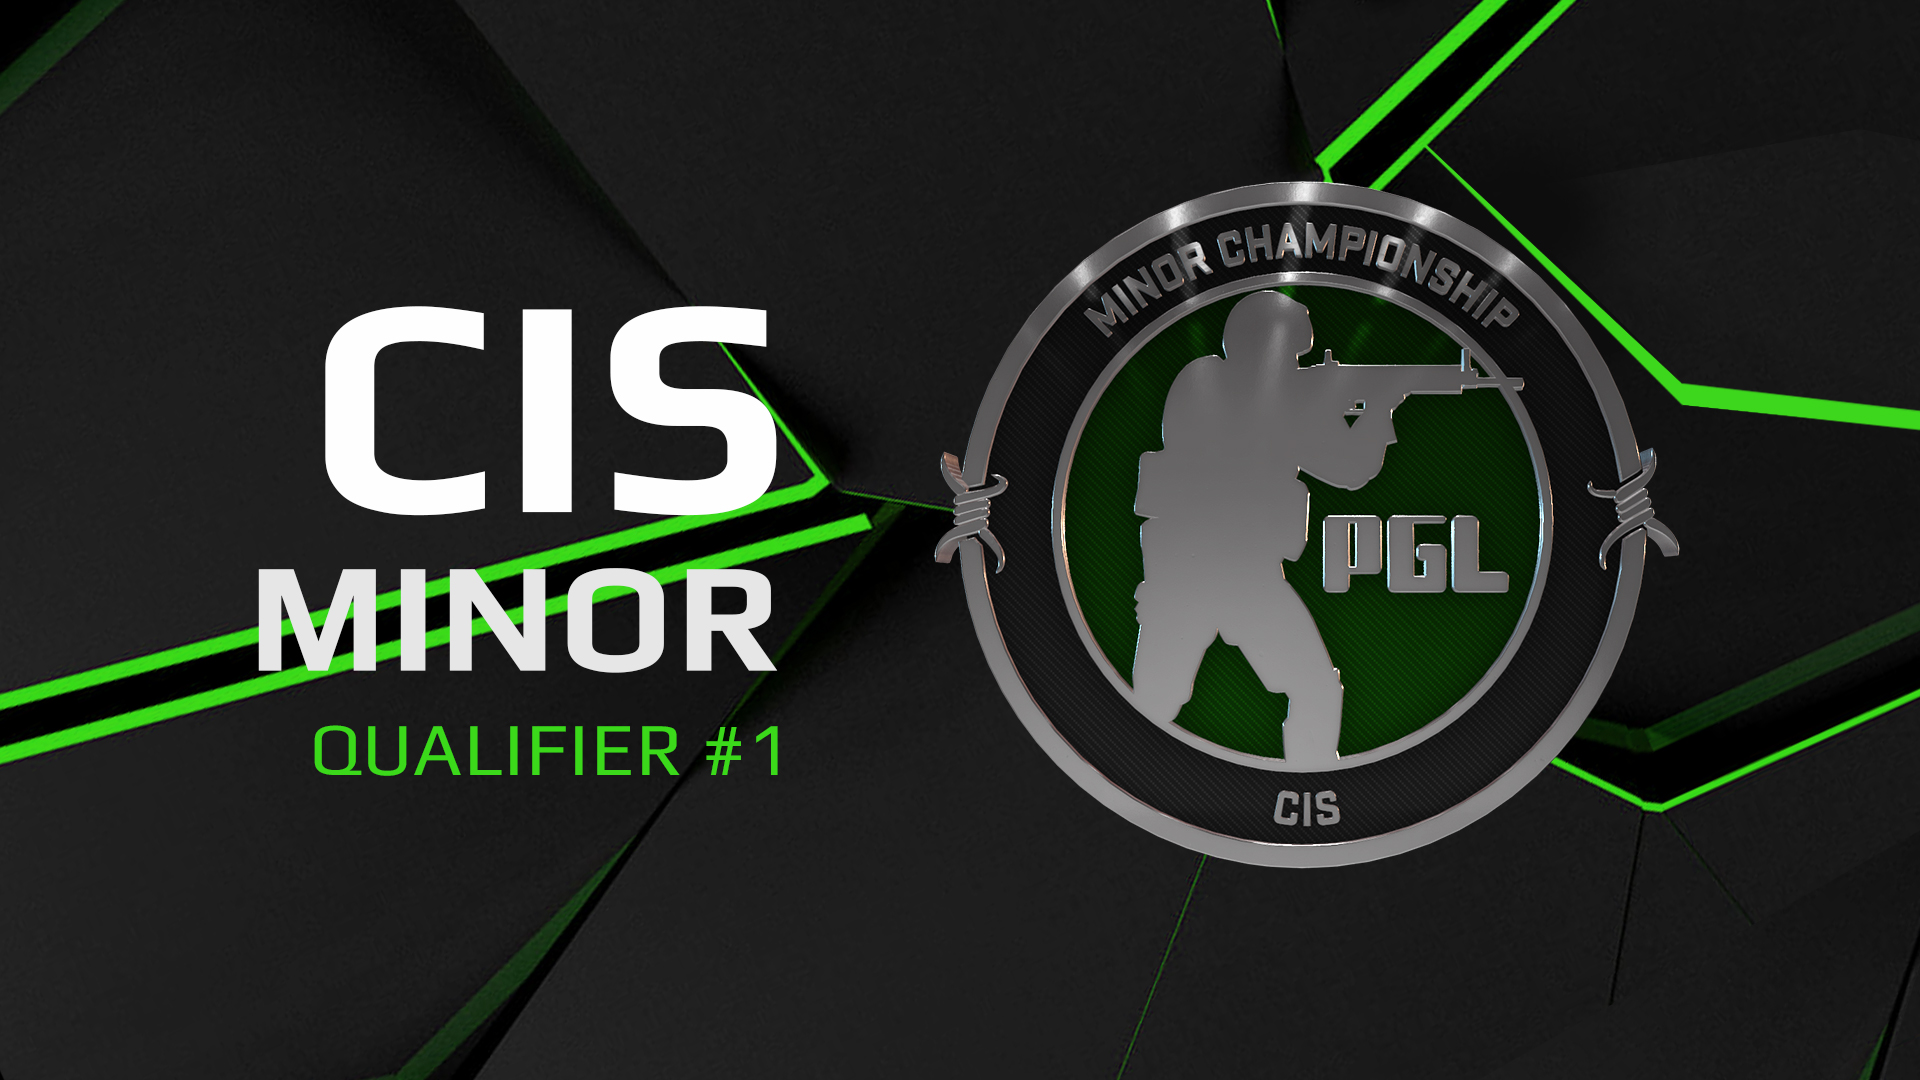 CIS Minor open qualifier